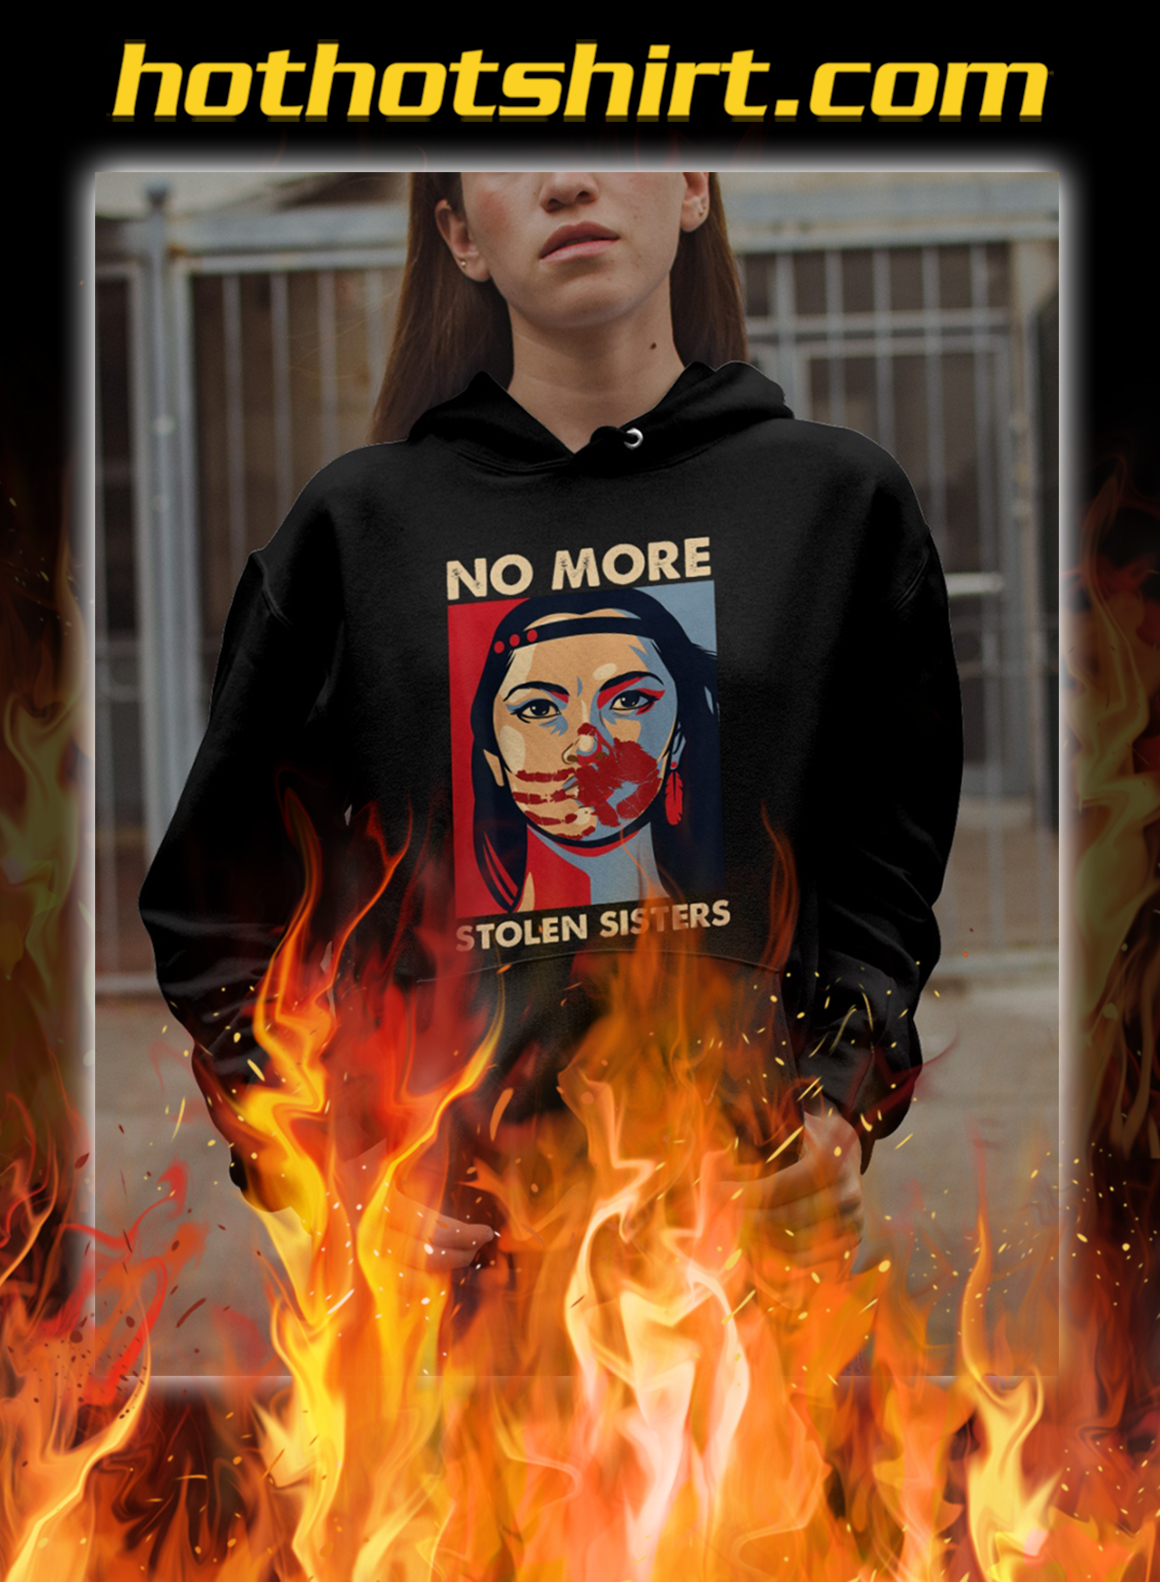 No more stolen sisters hoodie- pic 1